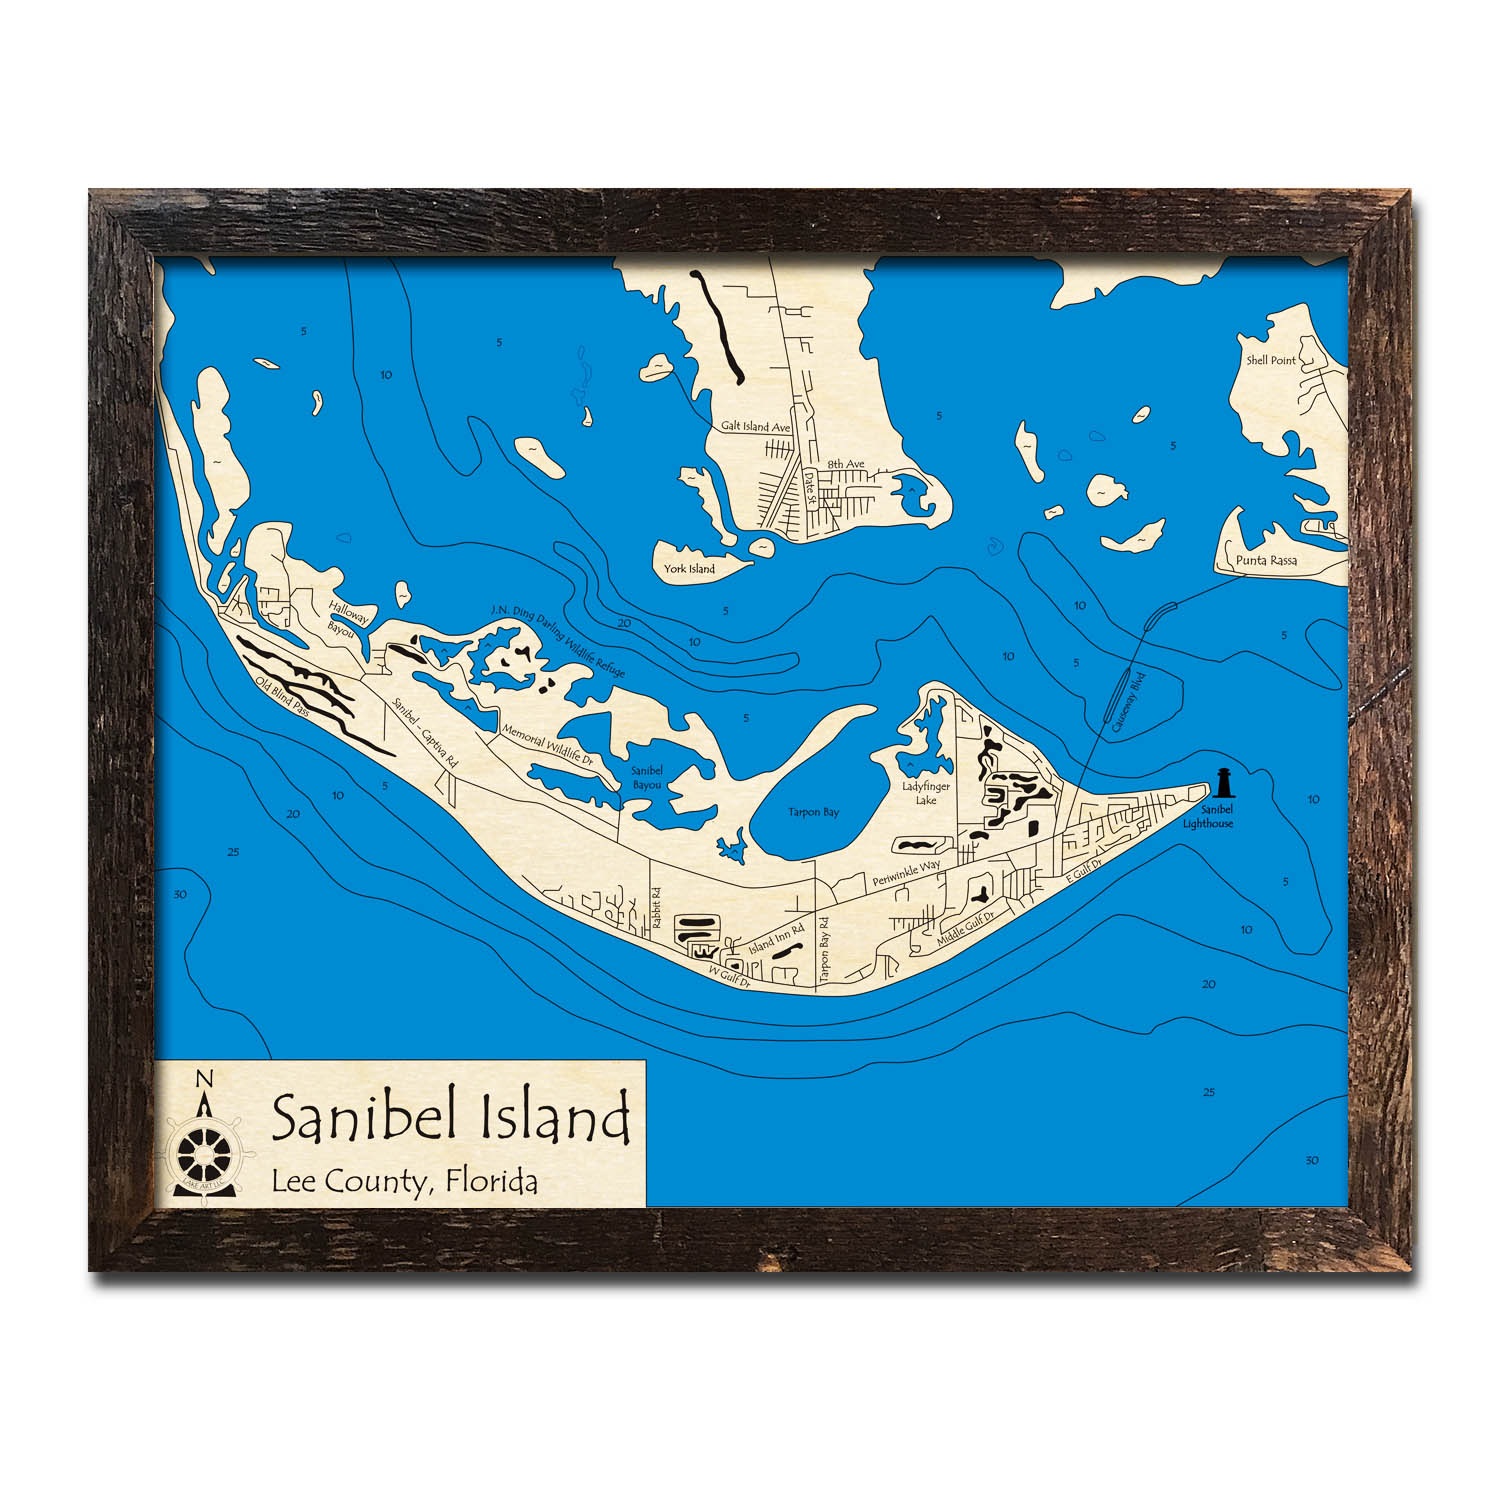 Sanibel Island, FL Nautical Wood Maps on south seas island resort map, st. augustine map, union park map, steinhatchee map, east coast of the united states map, wellington map, martinique on the gulf map, bowman's beach map, pratumnak map, villas by the sea map, chokoloskee map, alaqua lakes map, clewiston map, captiva map, fort myers map, florida map, st lucie map, ft. lauderdale map, buckingham map, ponce inlet map,